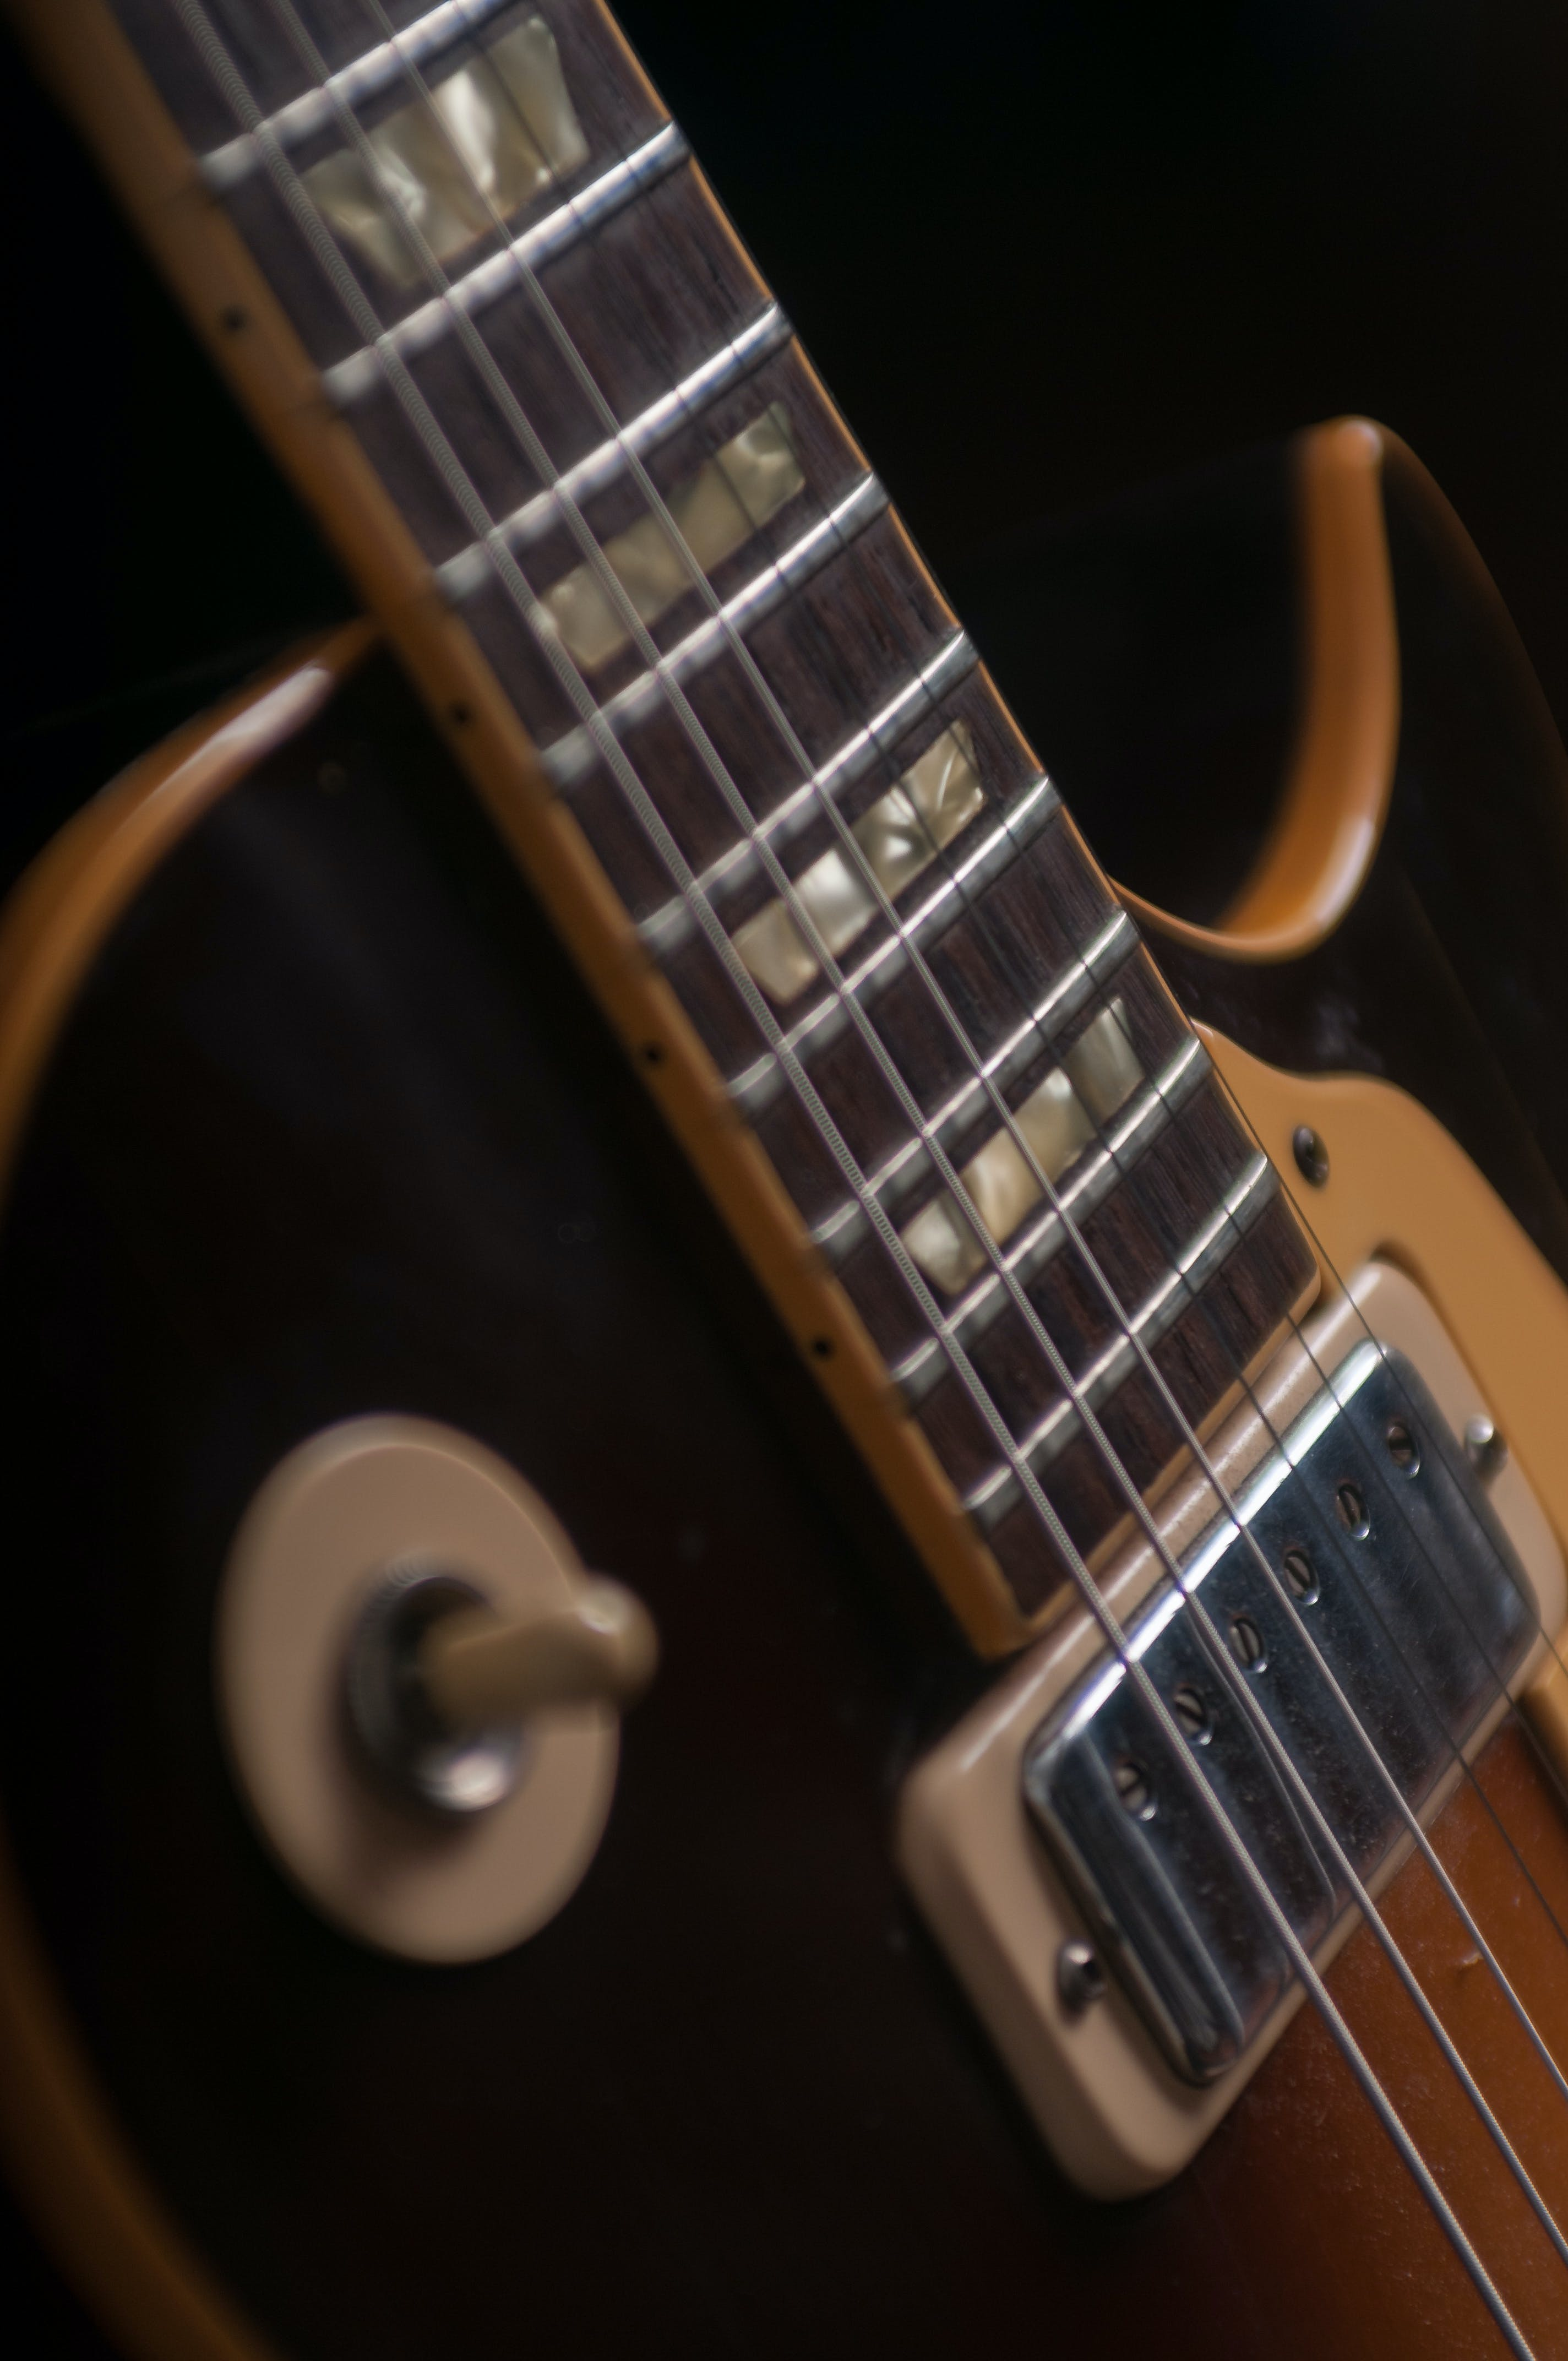 Free stock photo of electric guitar, Les paul 72 deluxe